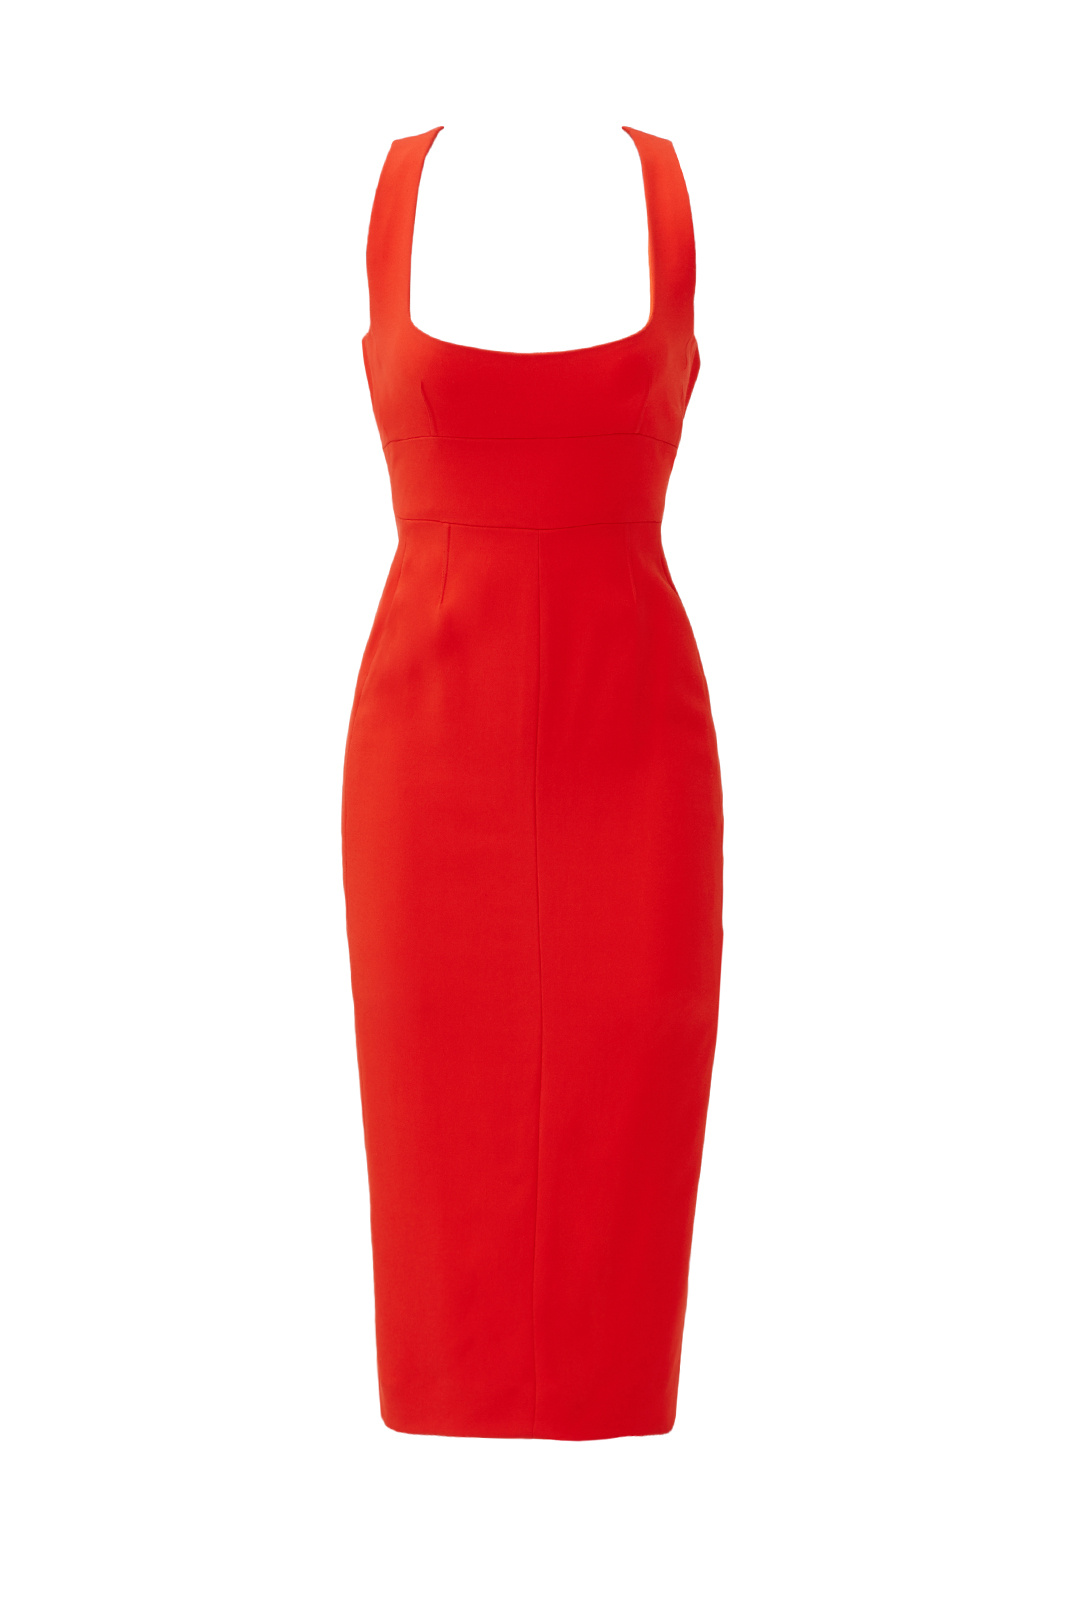 5220dbb903fd Details about Narciso Rodriguez Red Women's Size 00 Open Back Seamed Sheath  Dress $1995- #980